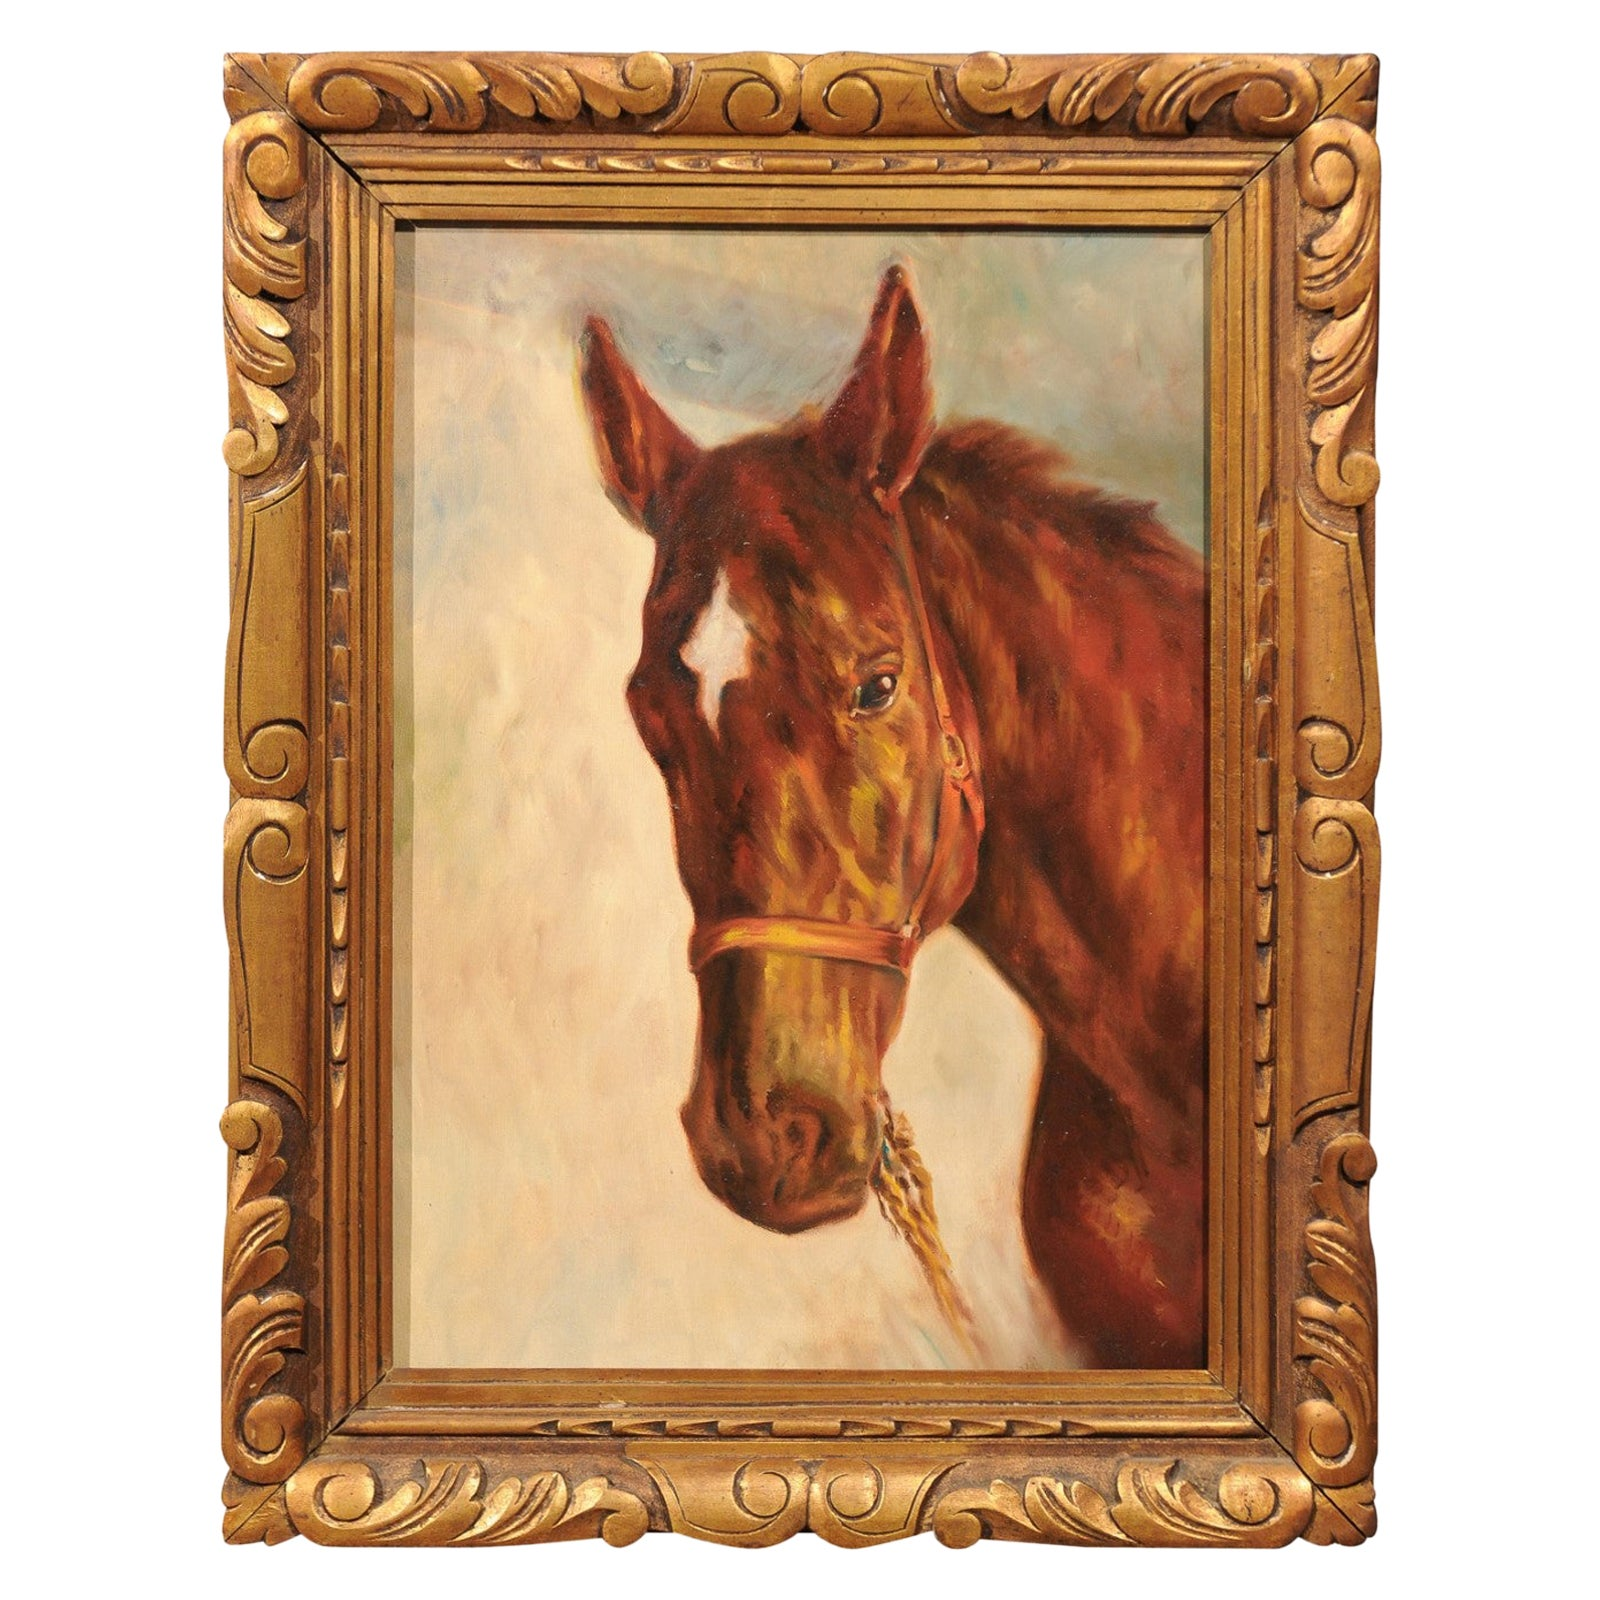 Belgian Oil On Canvas Horse Painting Depicting A Horse Head Seen In Profile For Sale At 1stdibs